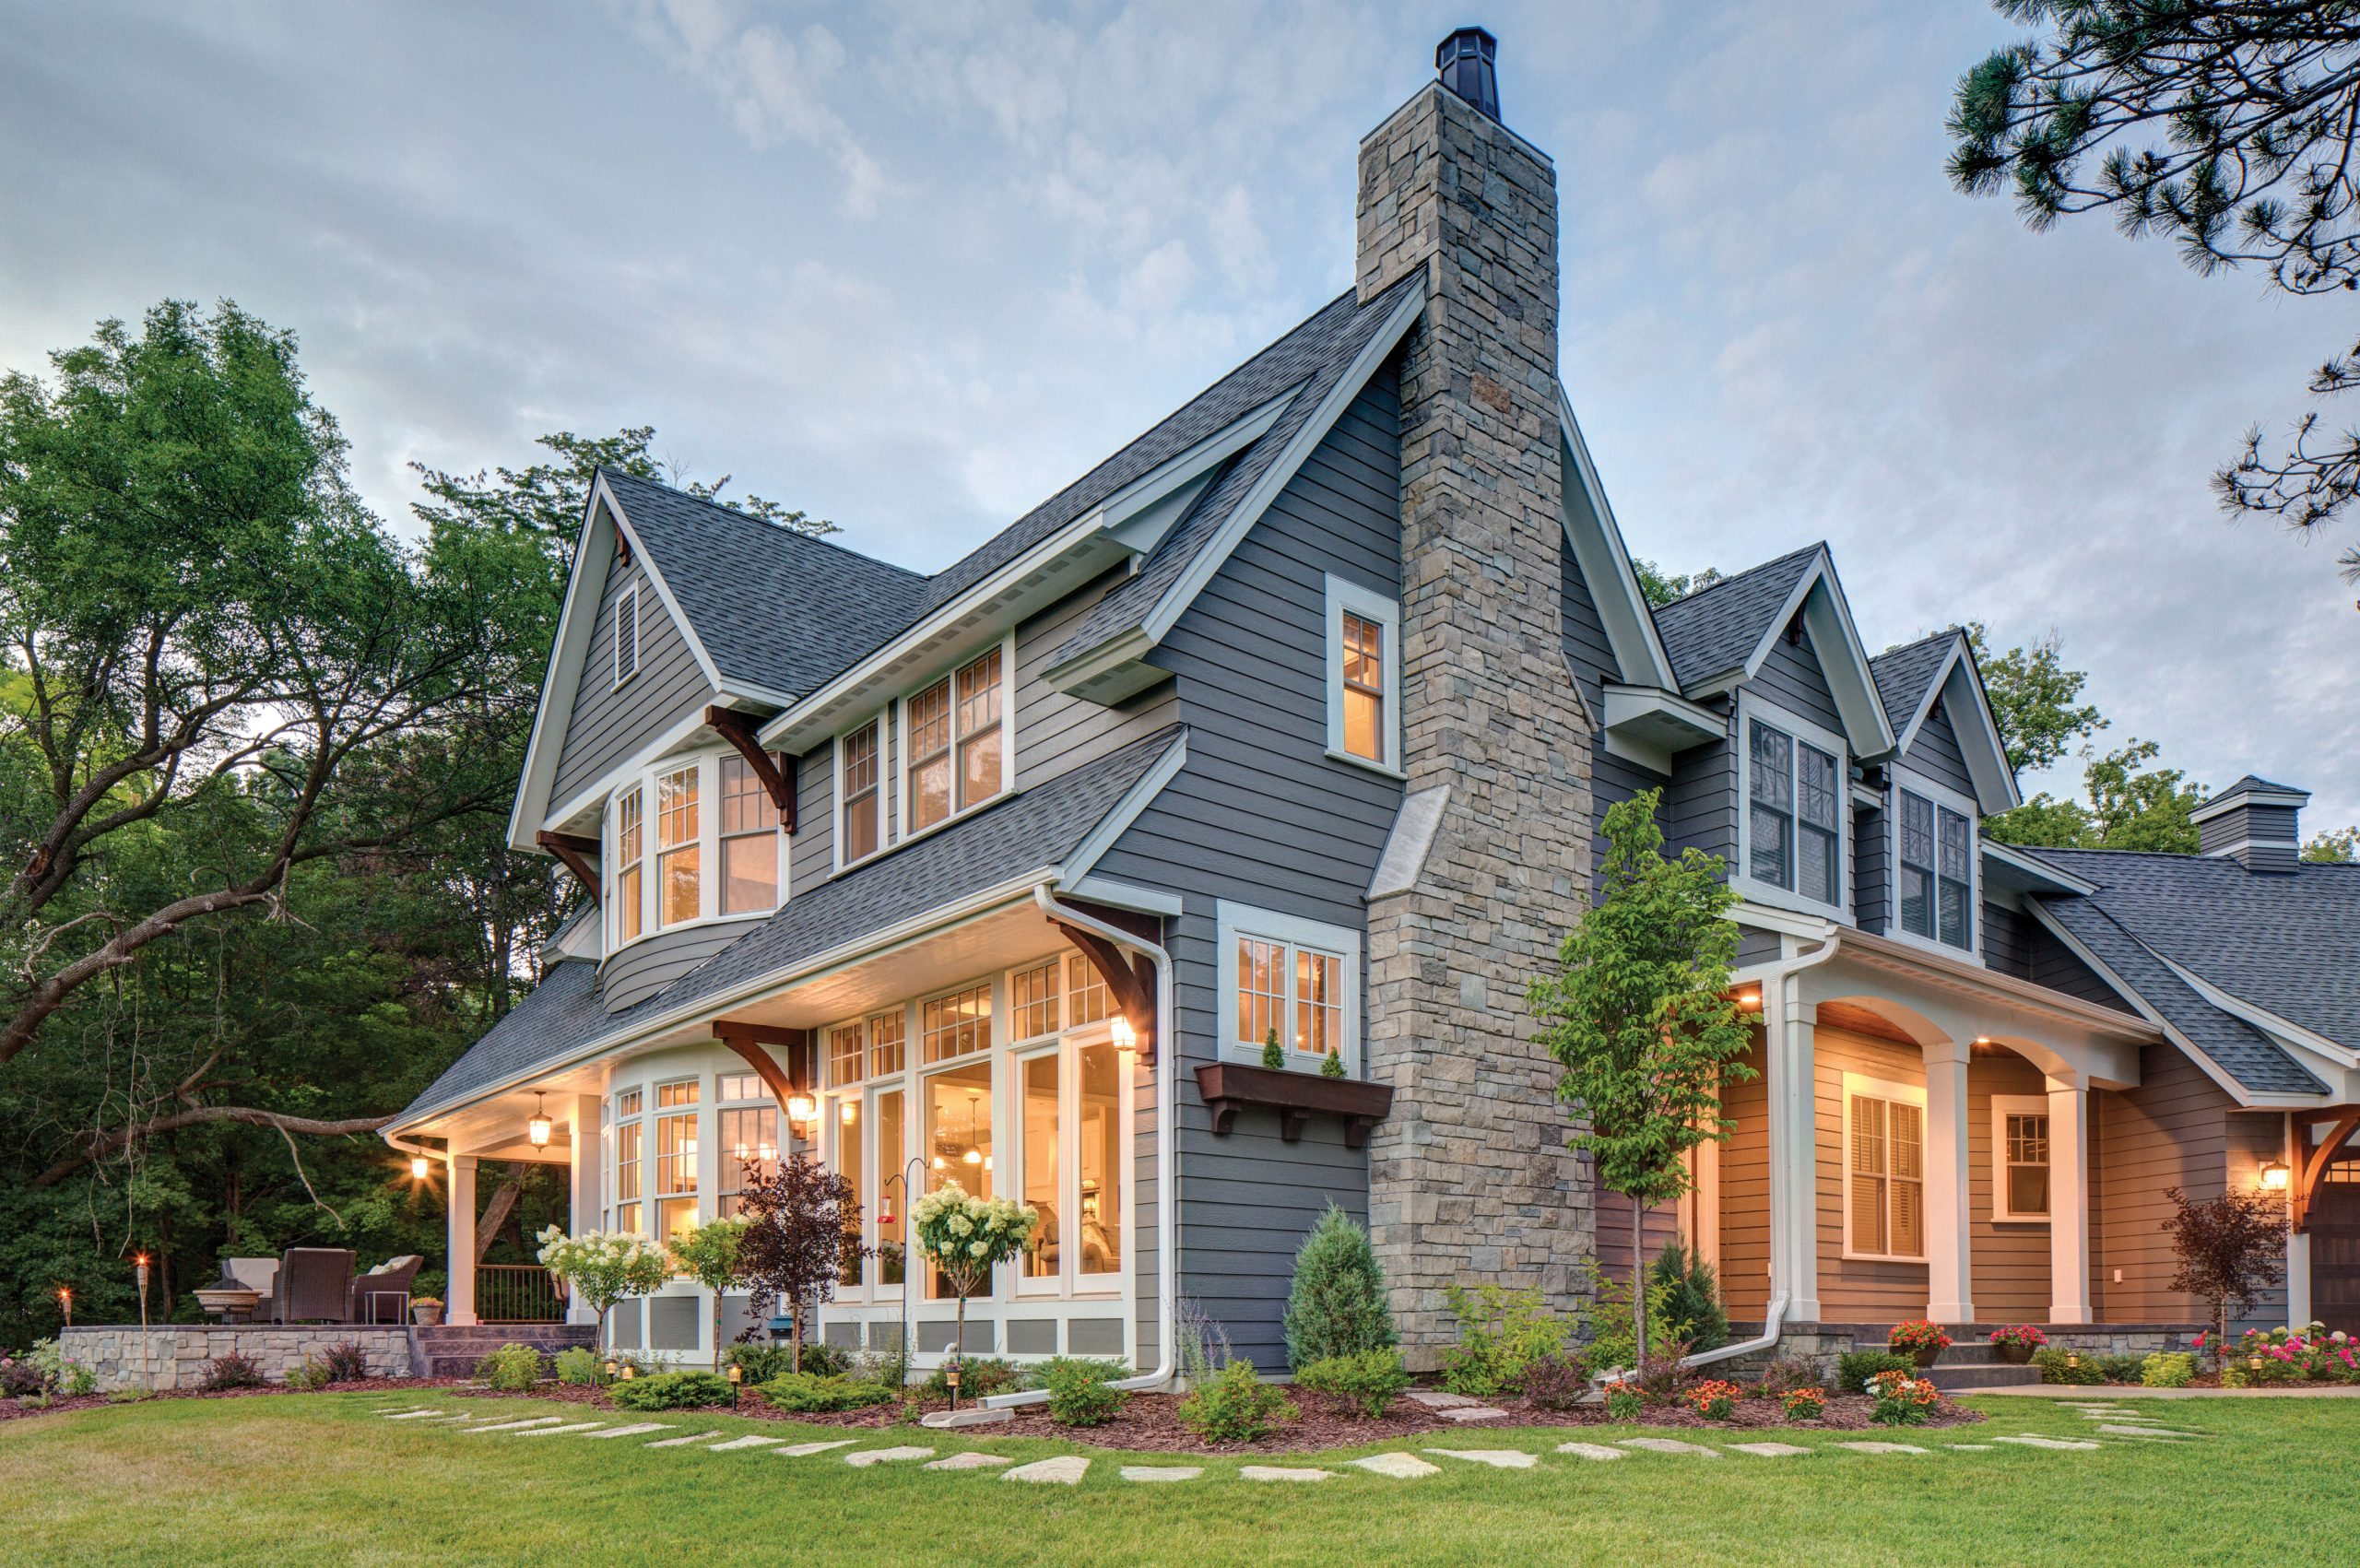 Blue gray siding colors with brown wood accents. White trim with white columns. Light brown stone veneer. Black roofing shingles.